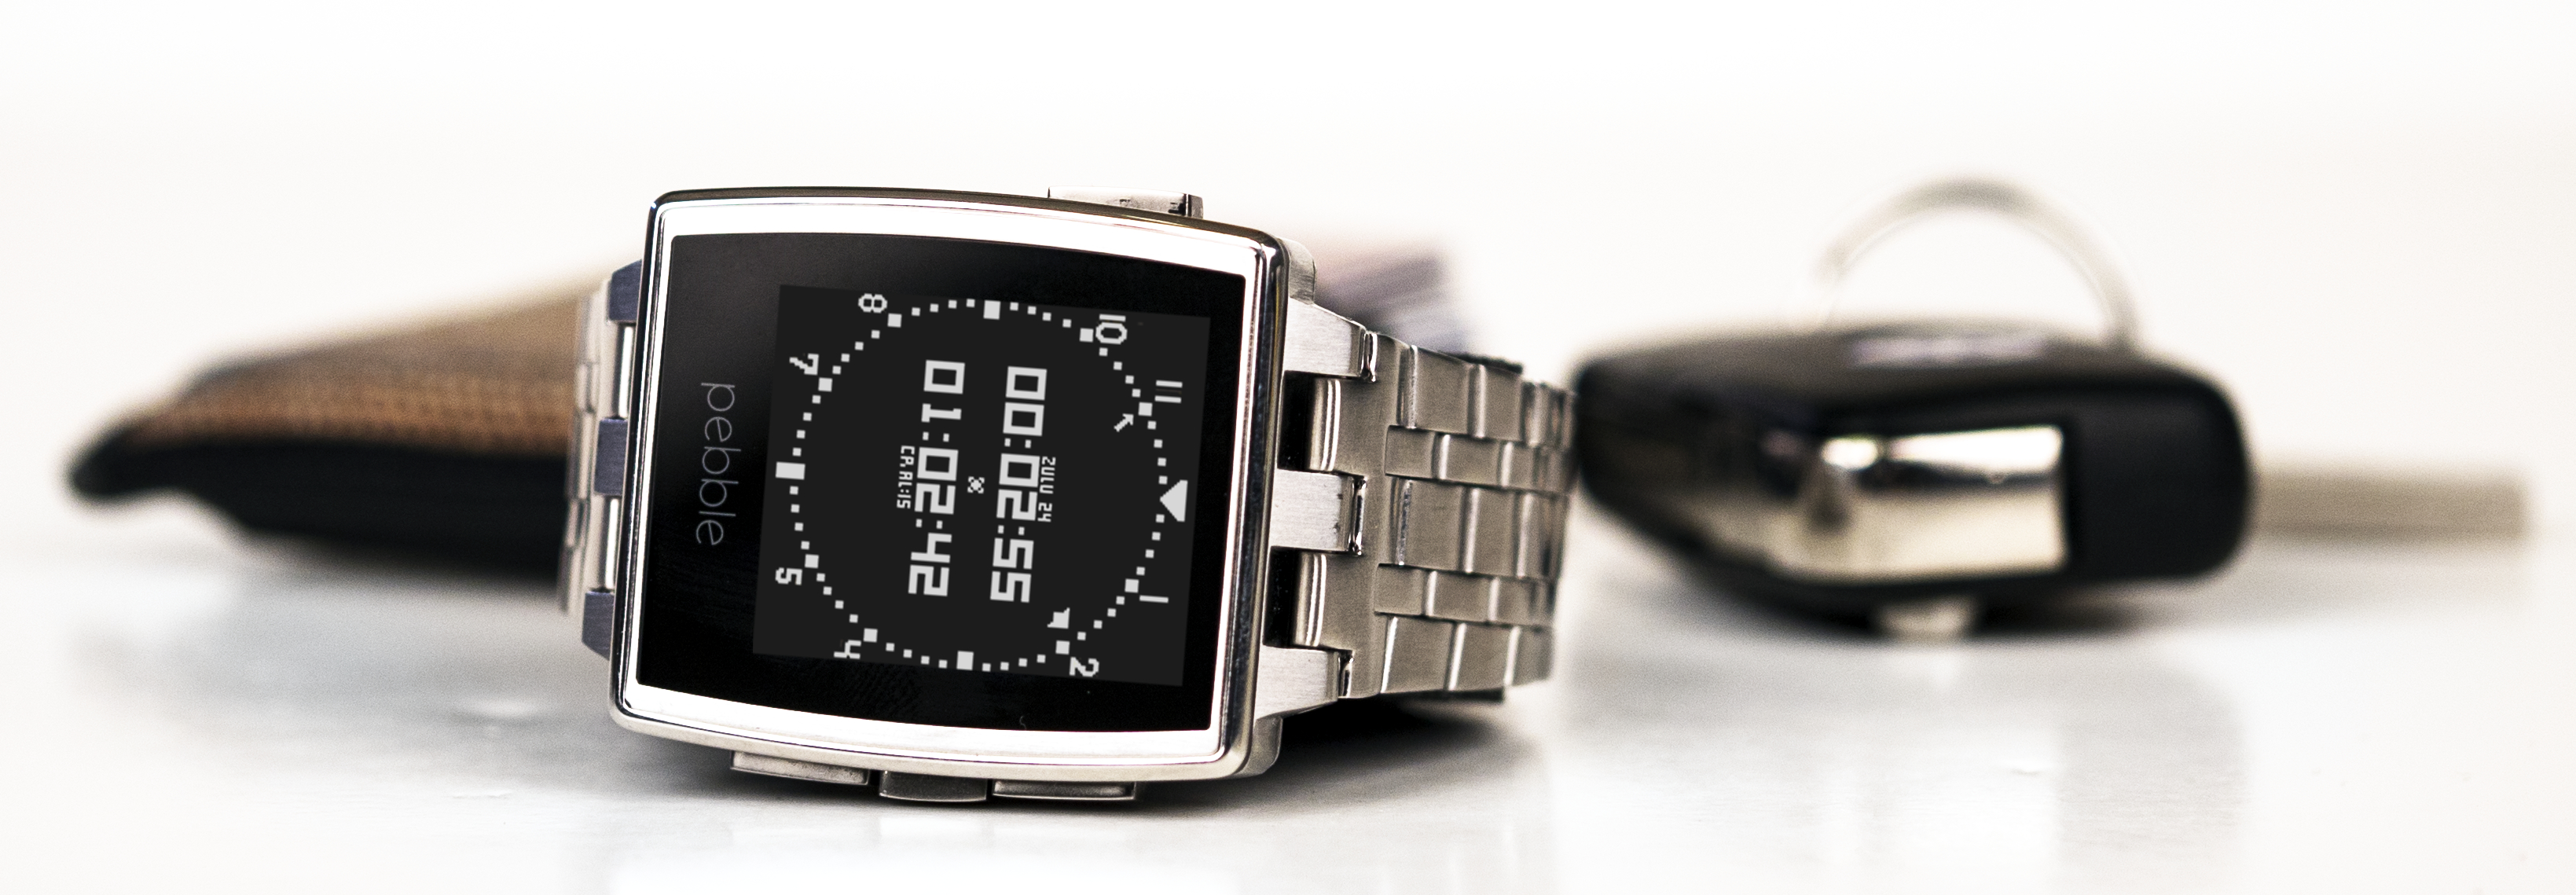 With Pebble Steel, the smartwatch aims for traditional ...